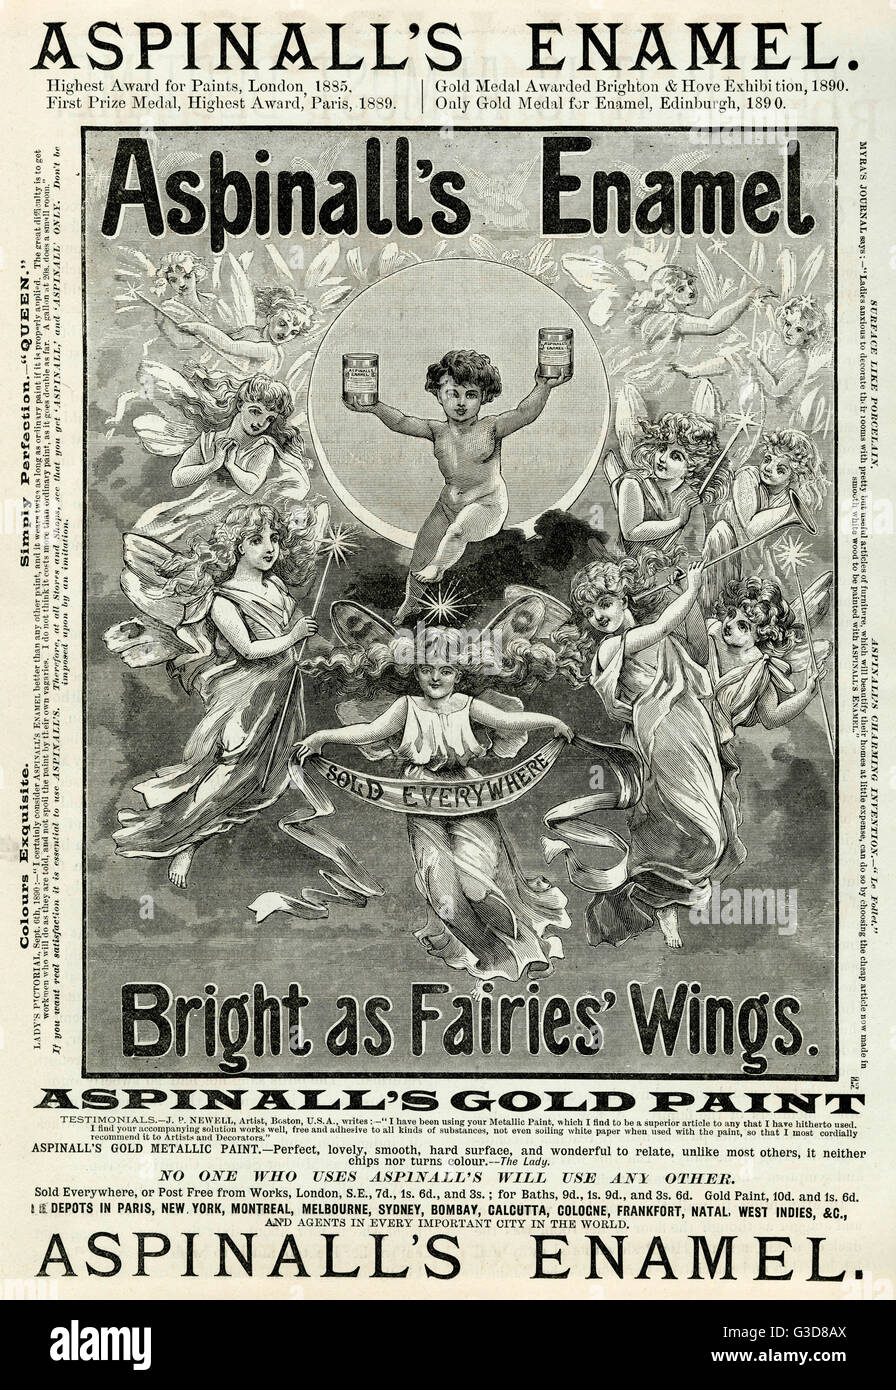 Aspinall's Enamel, paint for artist and decorators.     Date: 1890 Stock Photo